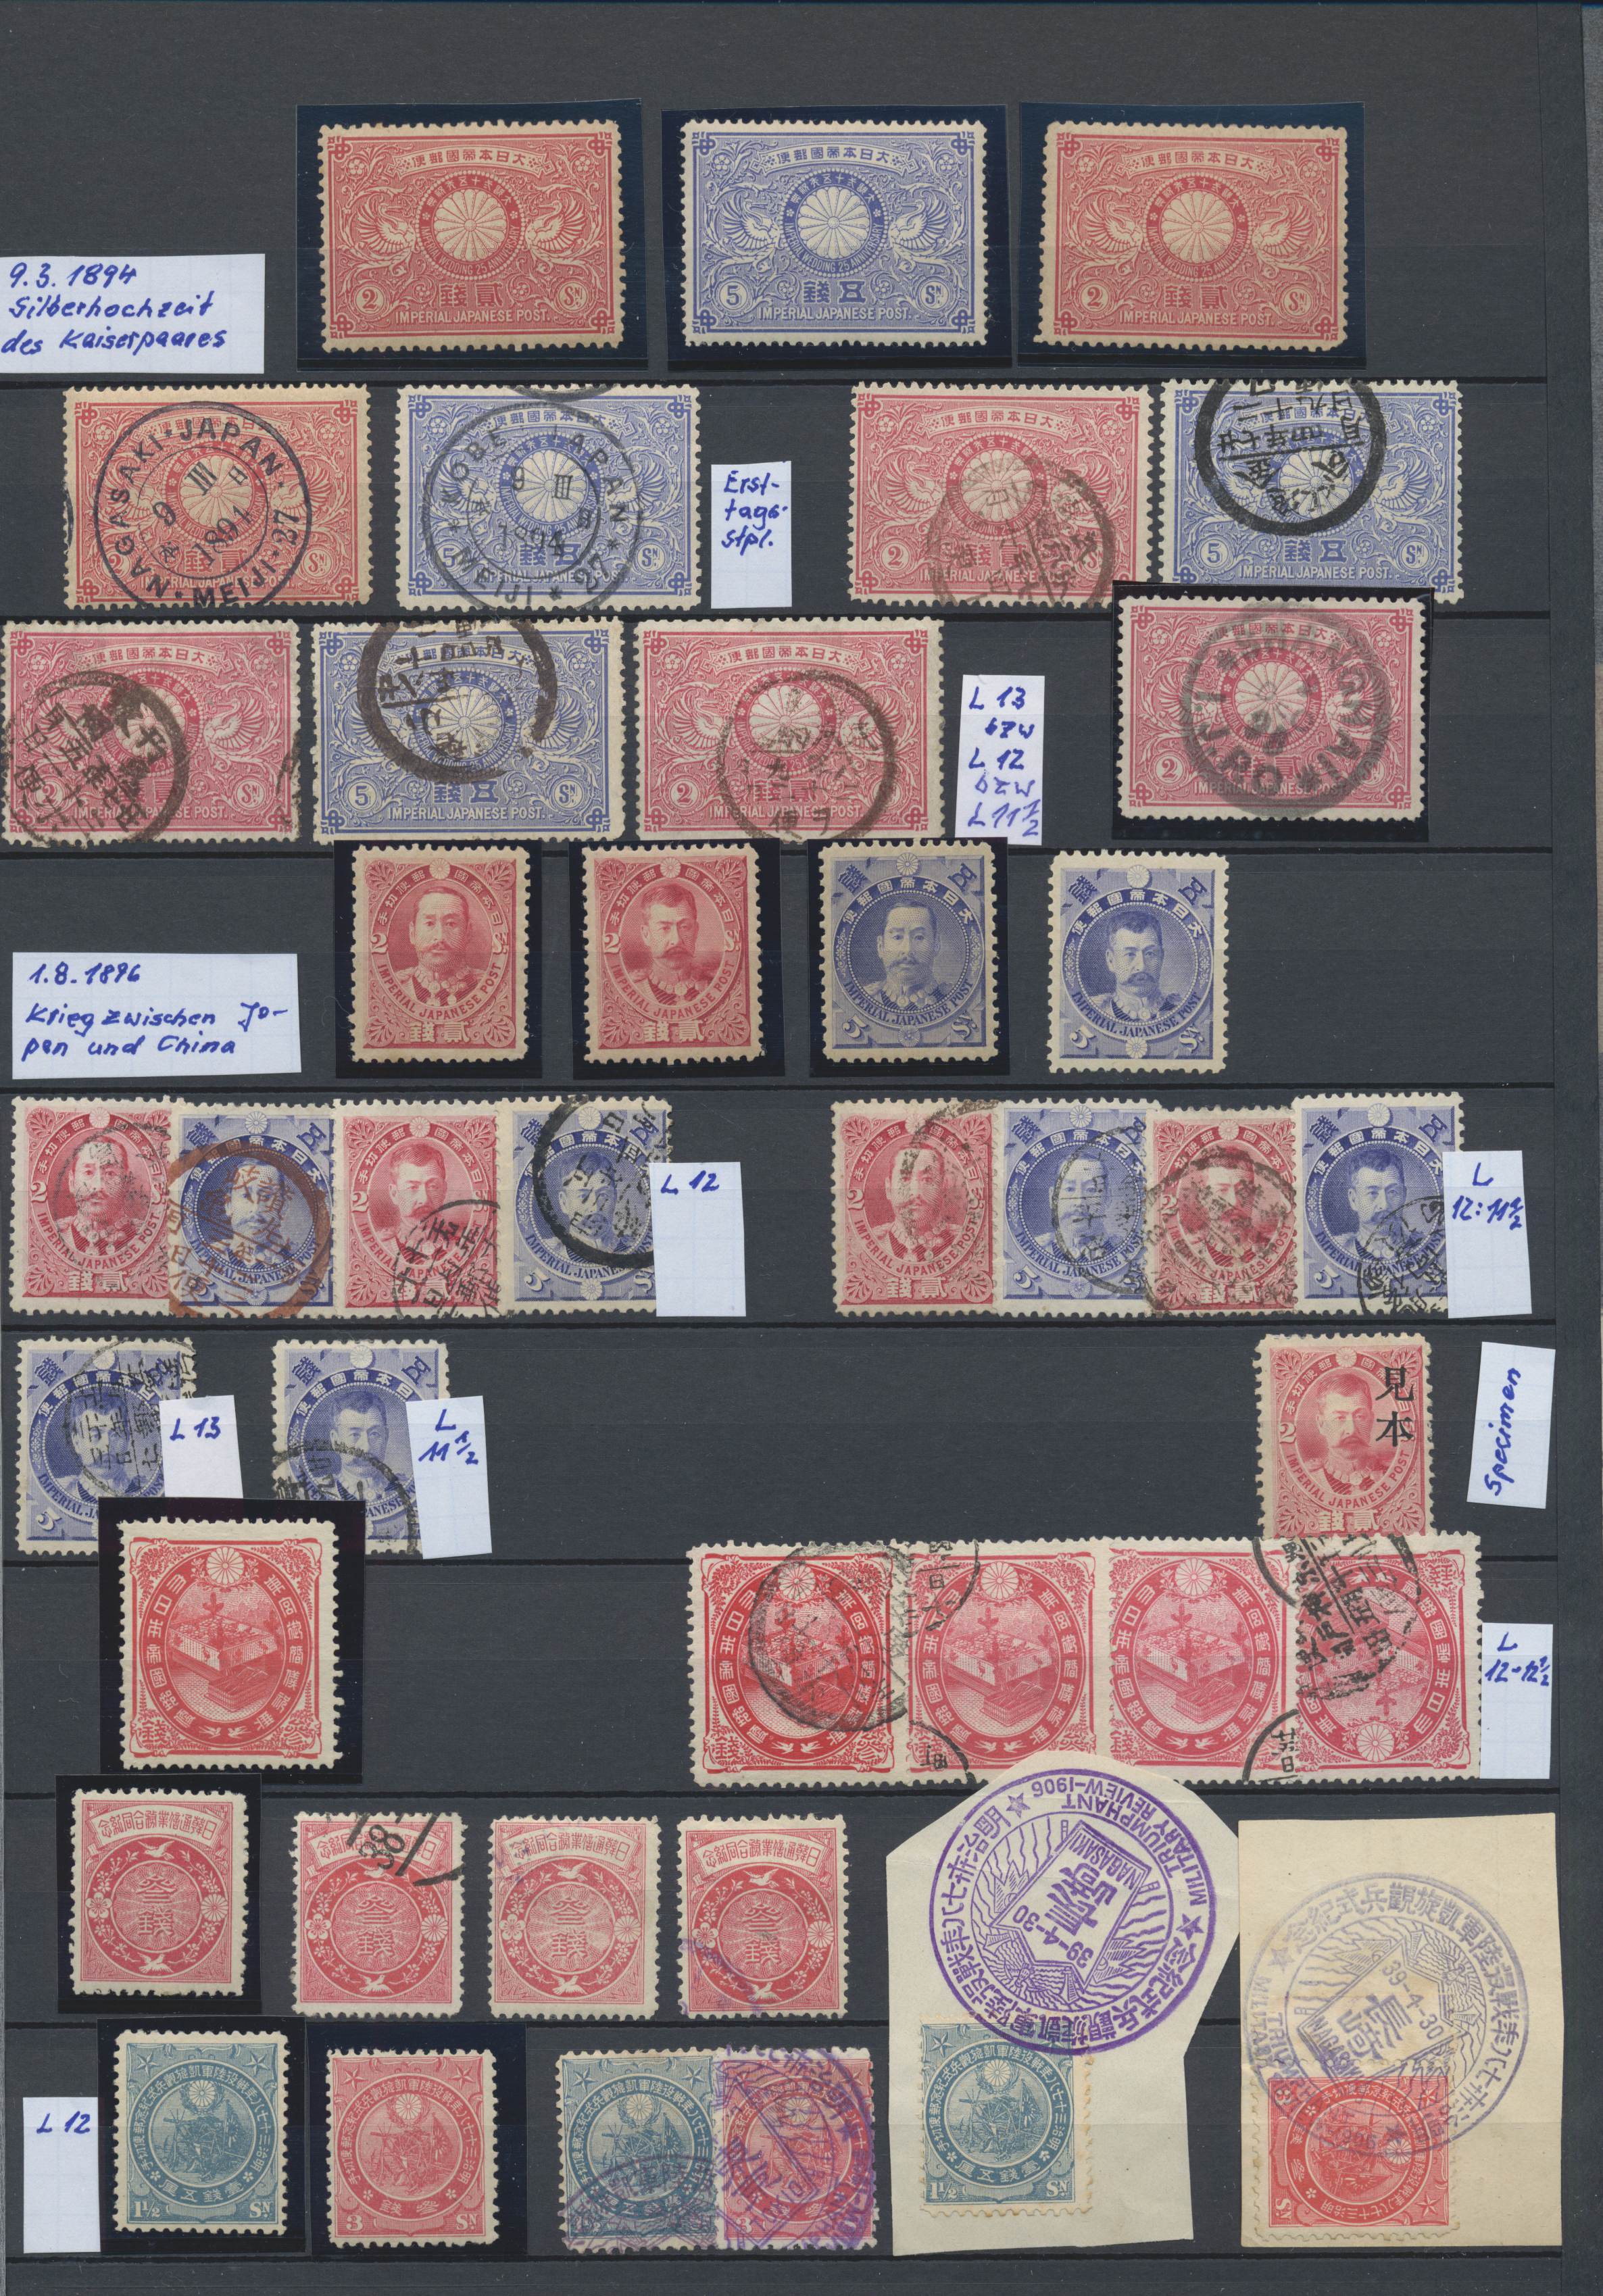 Lot 20886 - Japan  -  Auktionshaus Christoph Gärtner GmbH & Co. KG Sale #46 Collections Worldwide